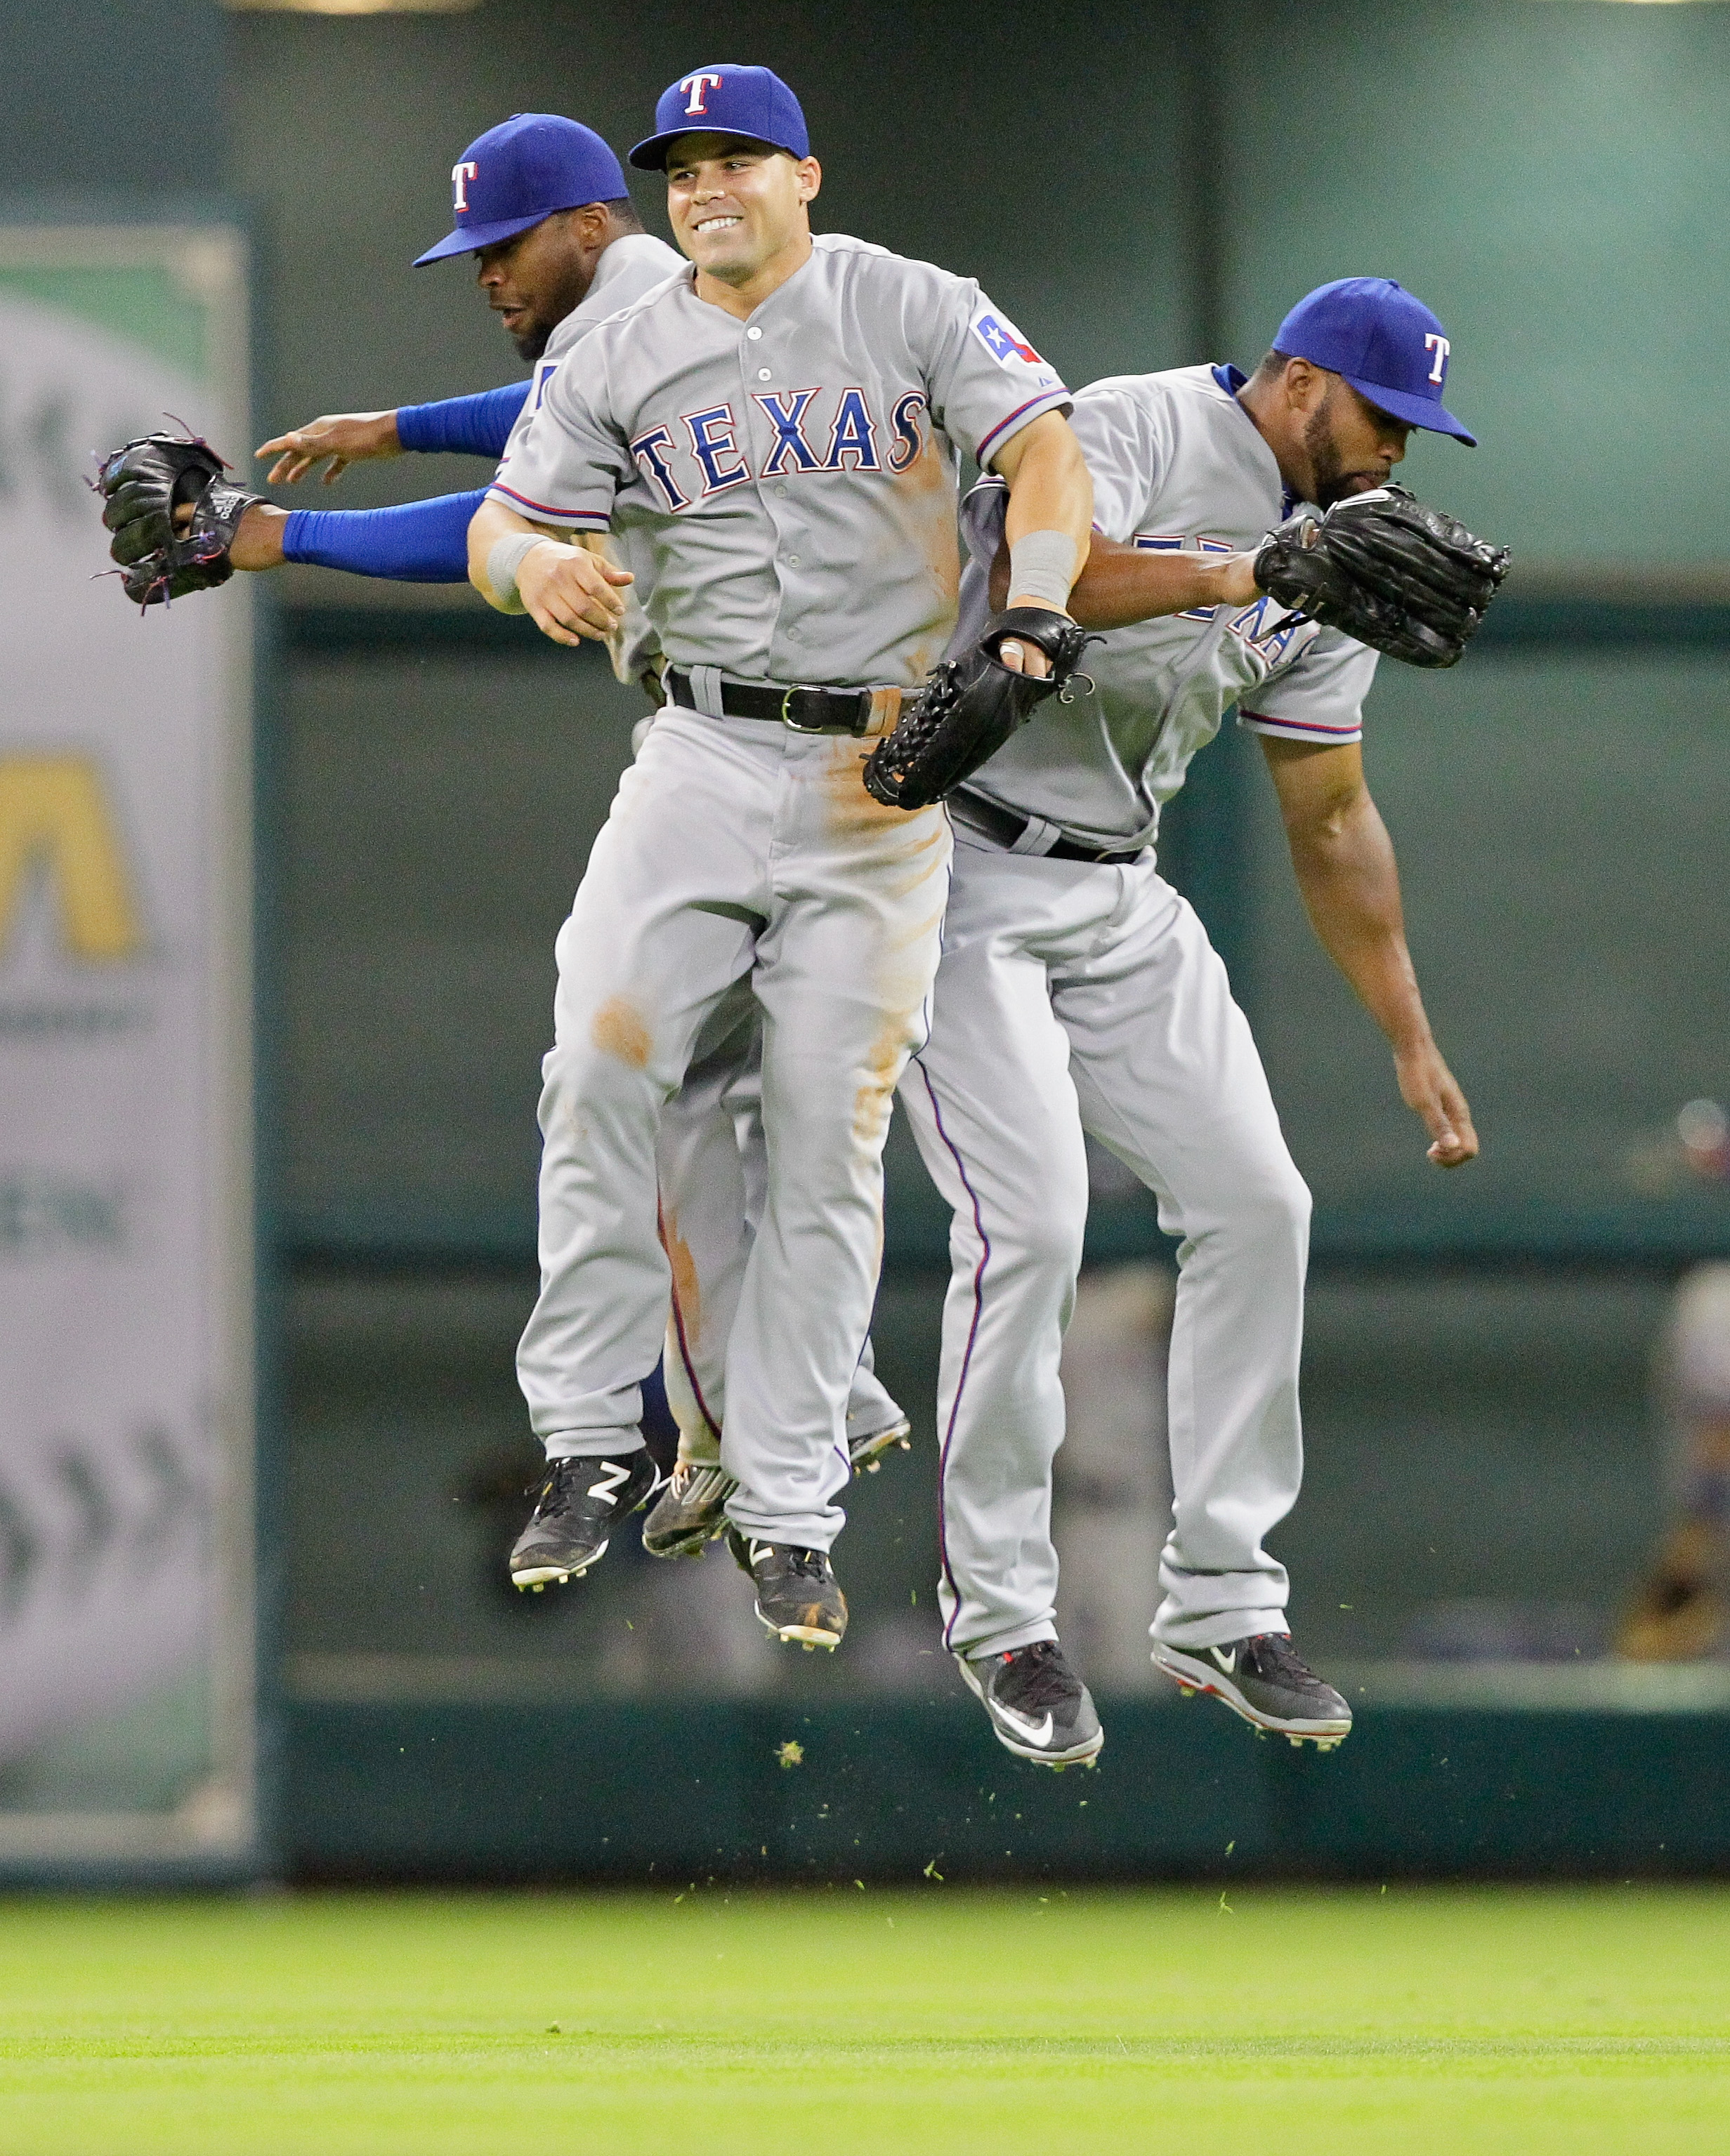 Texas Rangers' Jake Smolinski, center, along with left fielder Carlos Peguero, right, Delino DeShields Jr., left, celebrate after the final out against the Houston Astros in a baseball game Monday May 4, 2015 in Houston. Texas Rangers won 2-1. (AP Photo/B